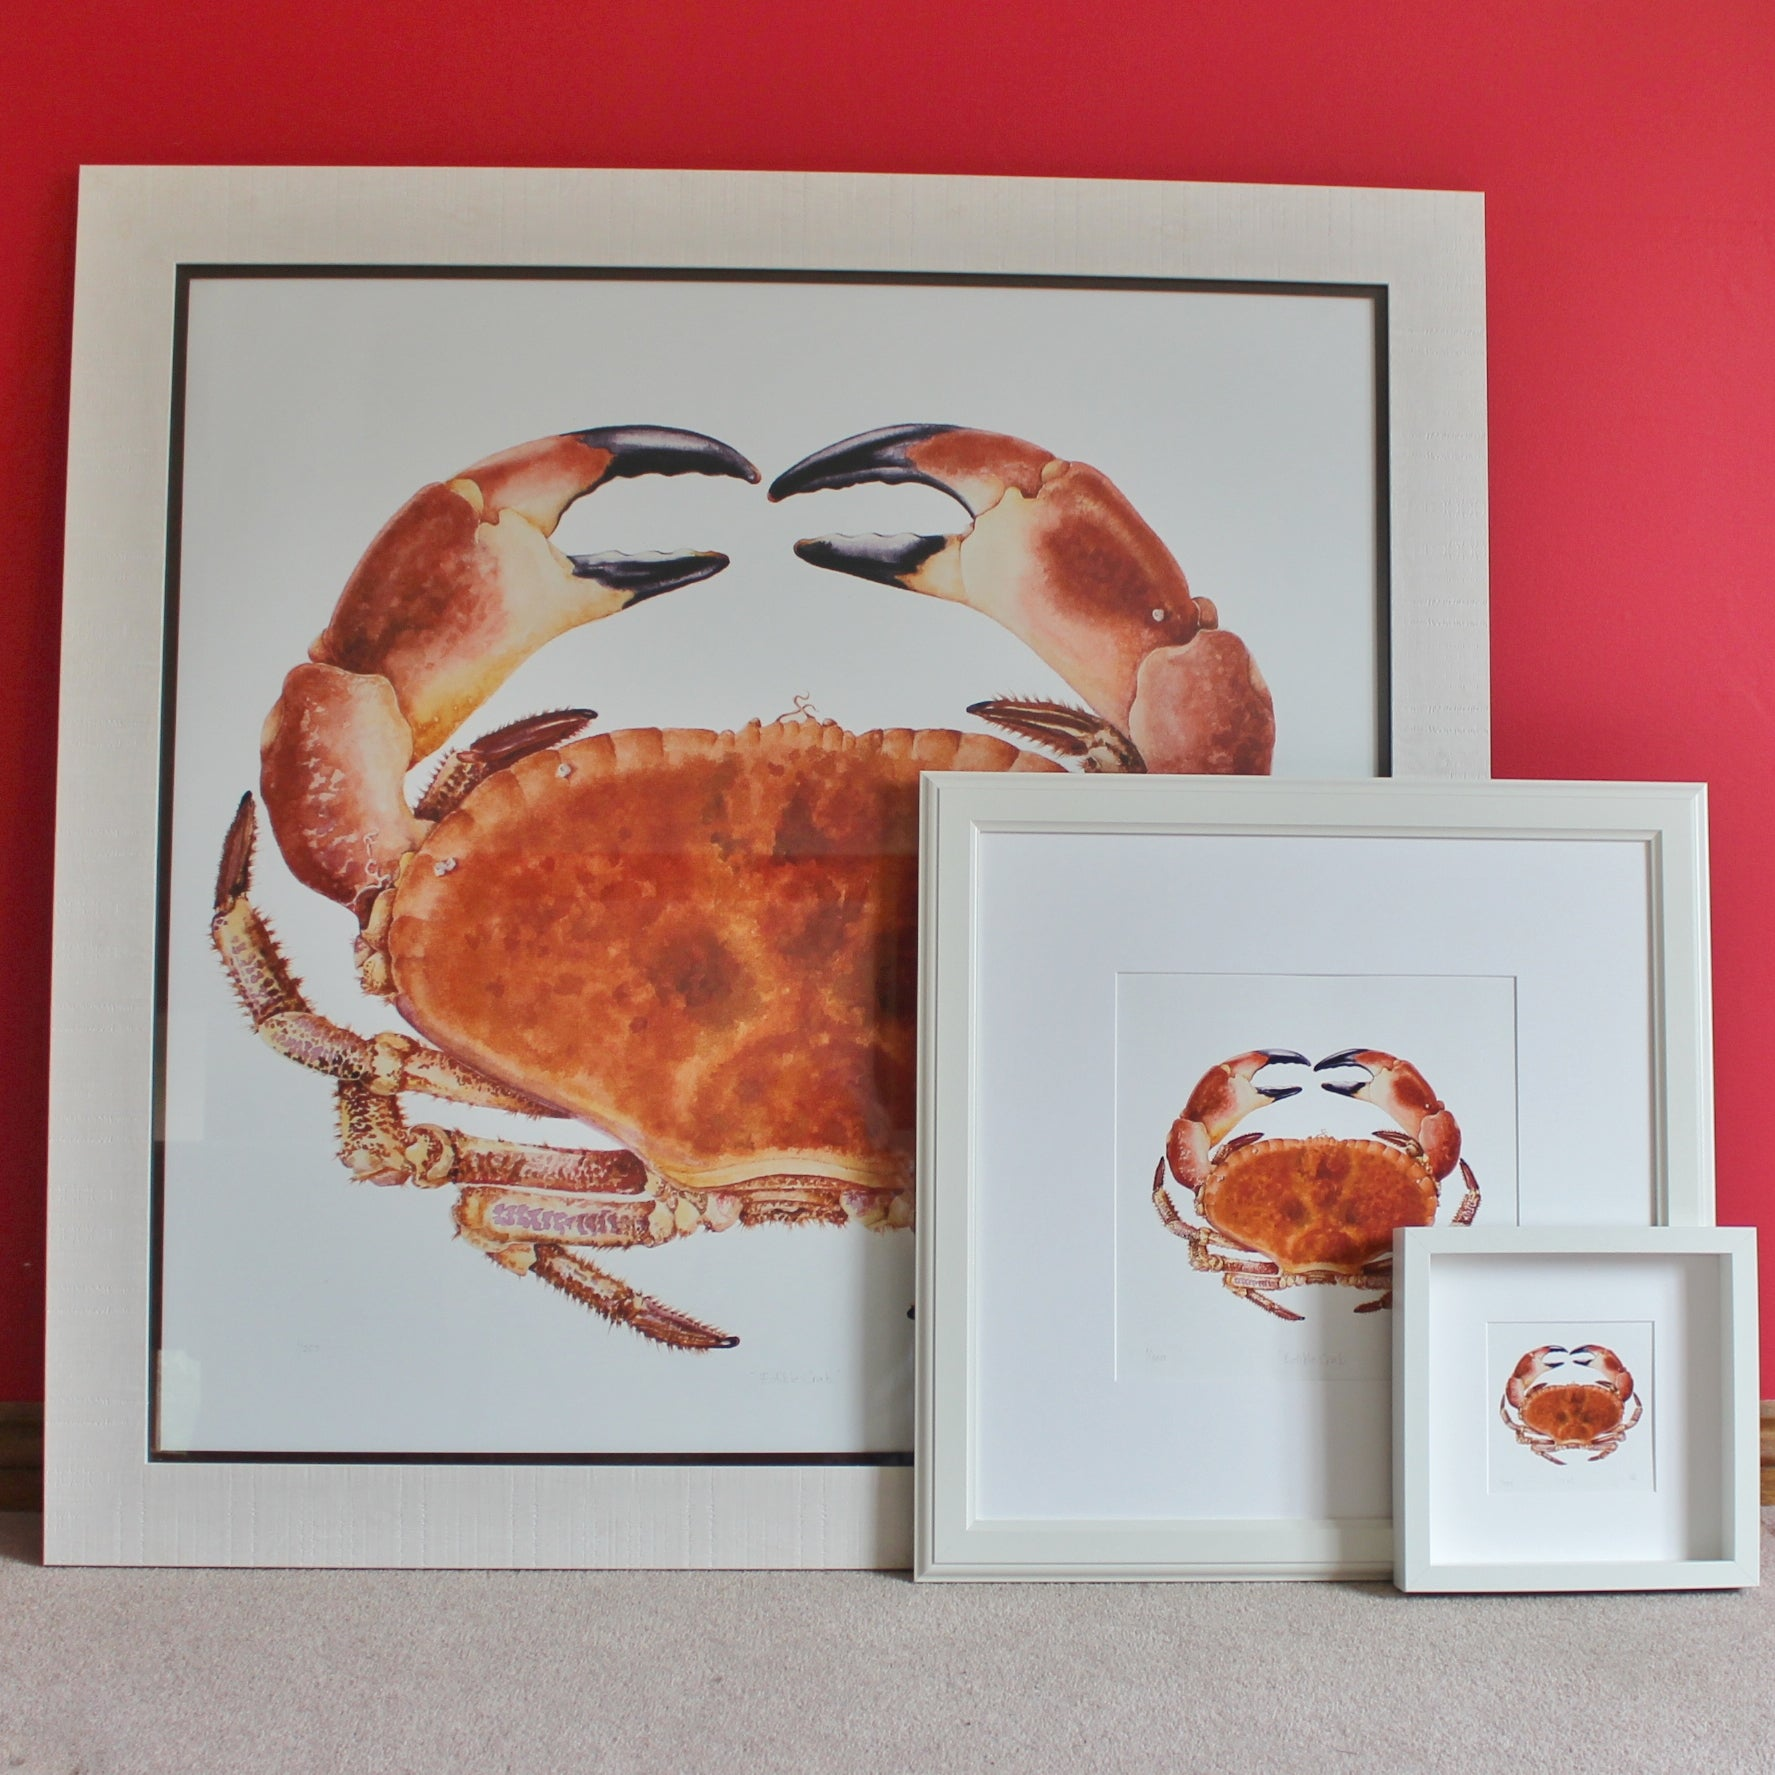 Crab print - artist's quality print of crab painting